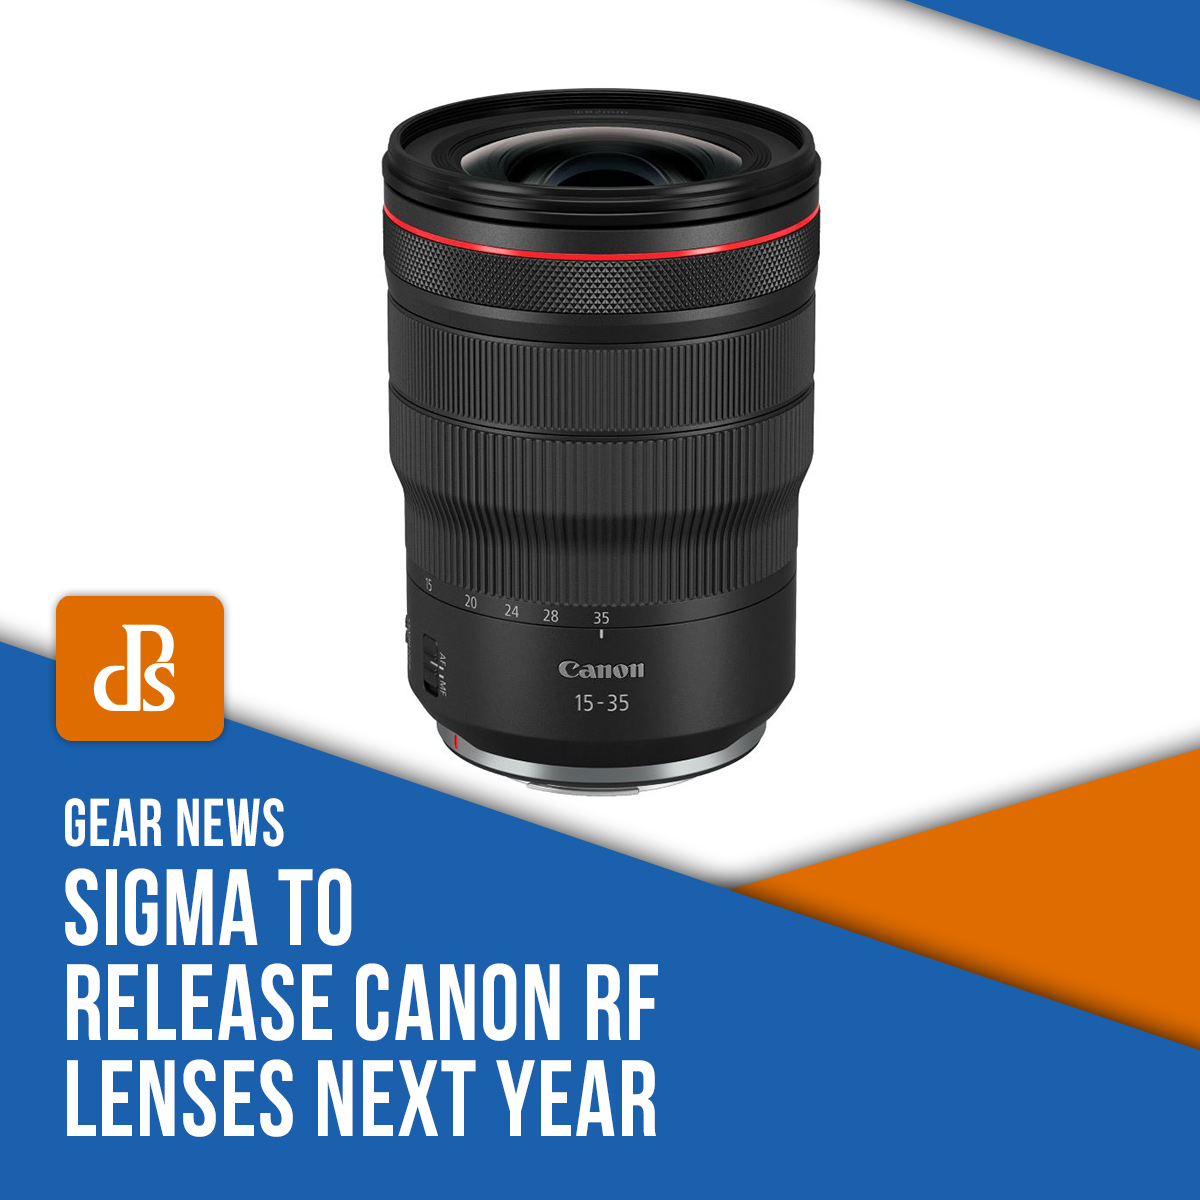 https://i2.wp.com/digital-photography-school.com/wp-content/uploads/2020/05/dps-sigma-canon-rf-lenses-news.jpg?ssl=1